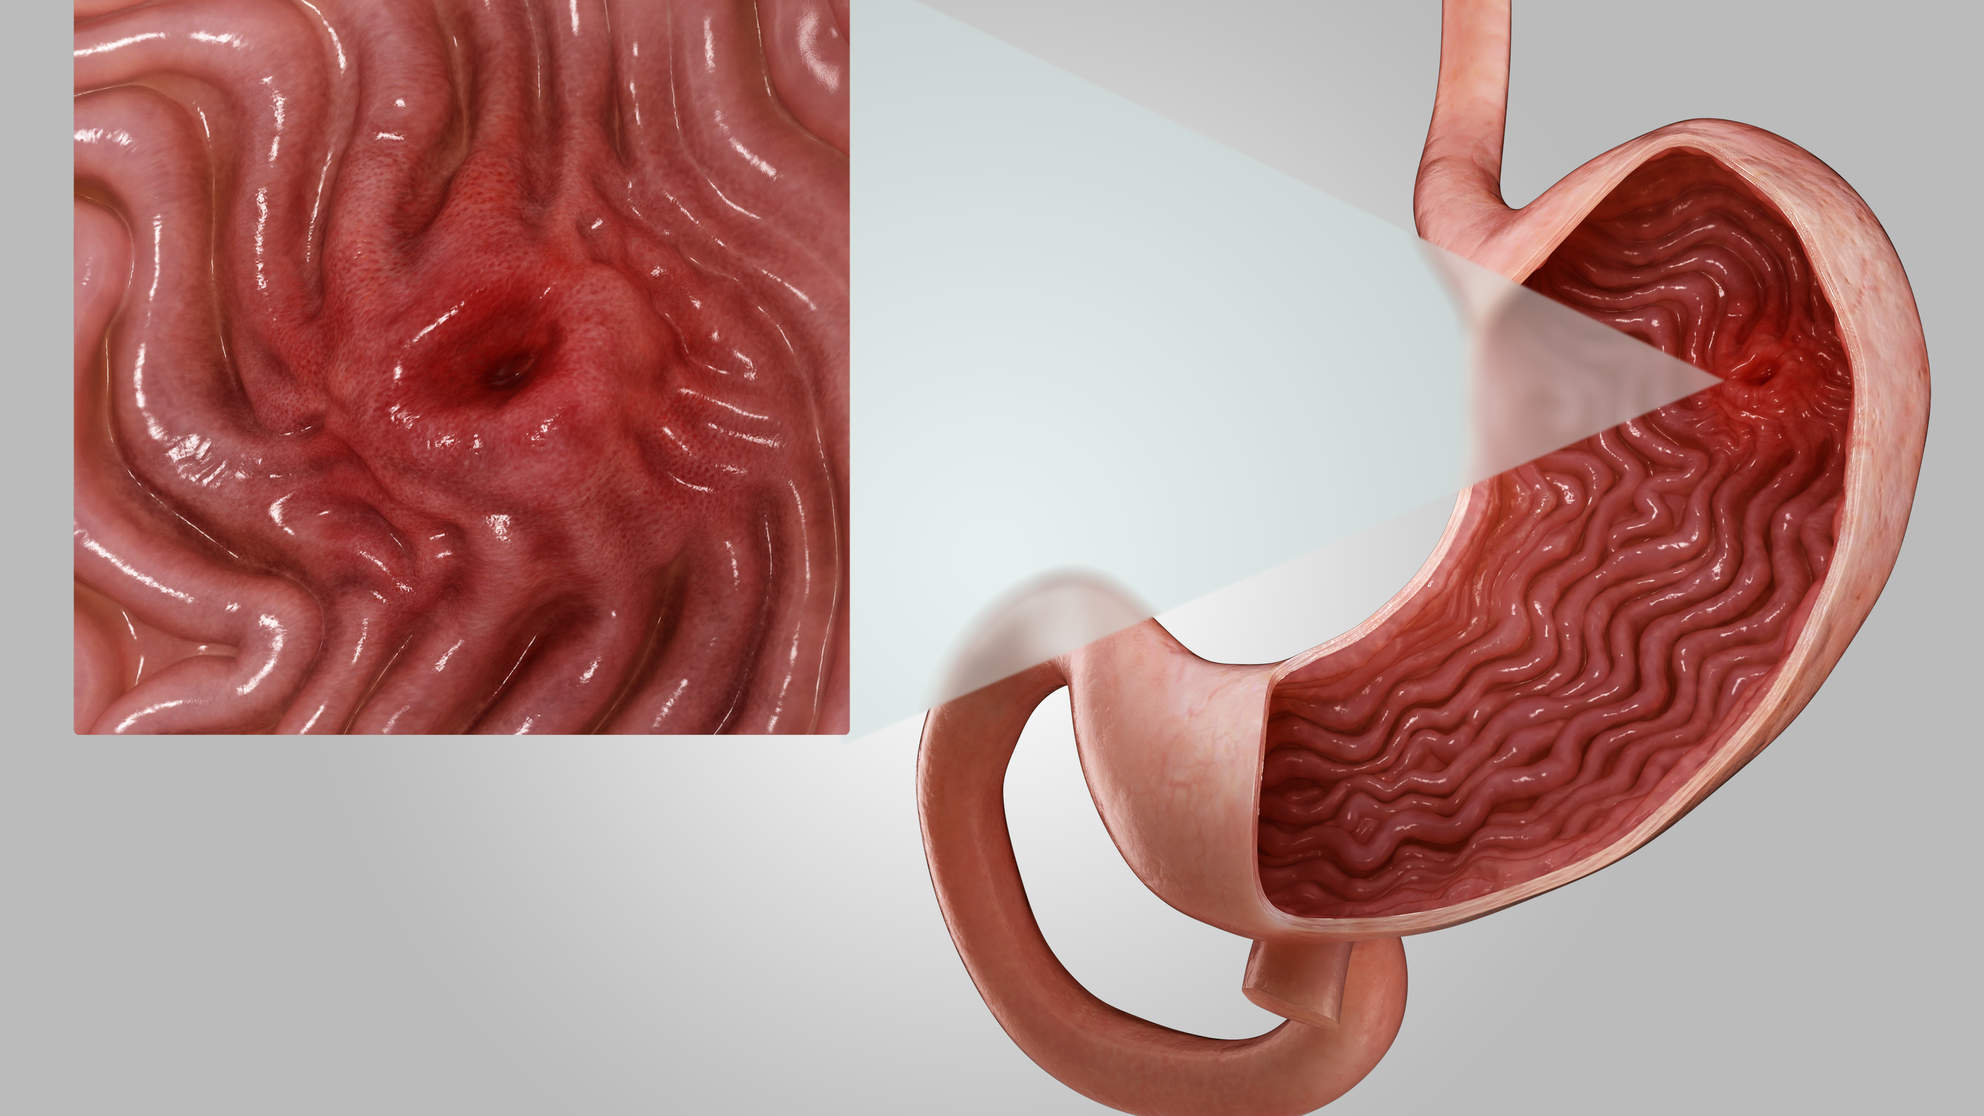 What Is a Stomach Ulcer? Here's What You Need to Know About Symptoms and Treatment